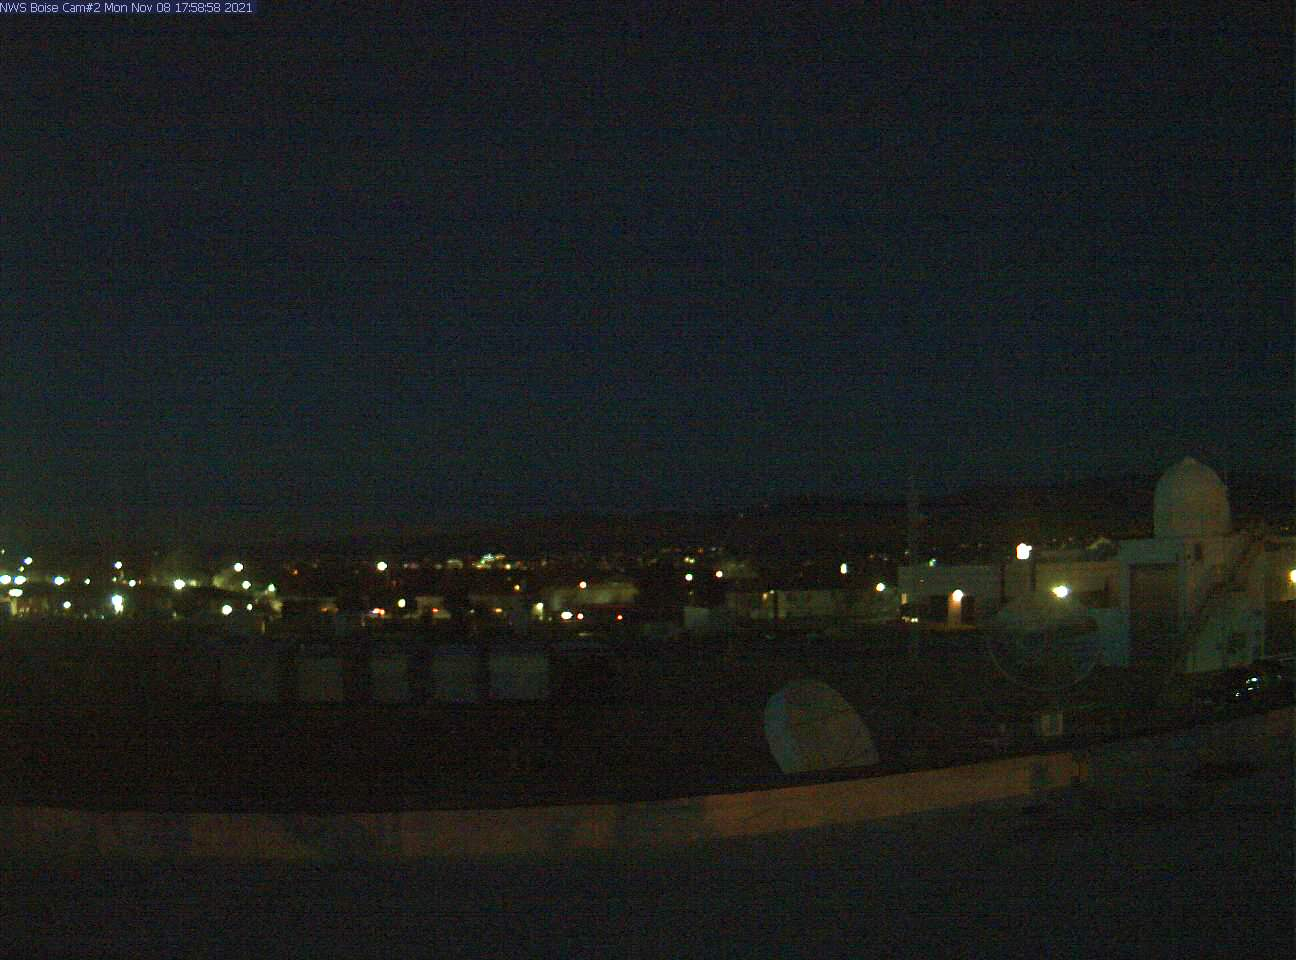 Picture of Boise web cam looking NNE